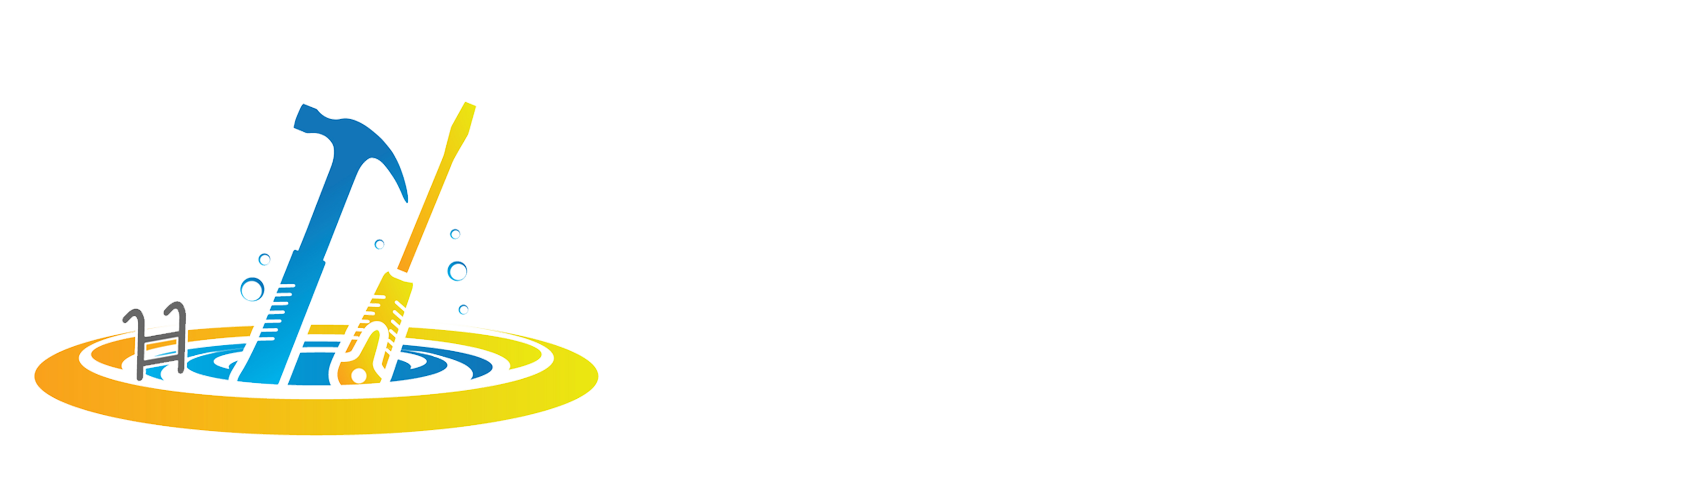 Pool Cleaning Newcastle LOGO